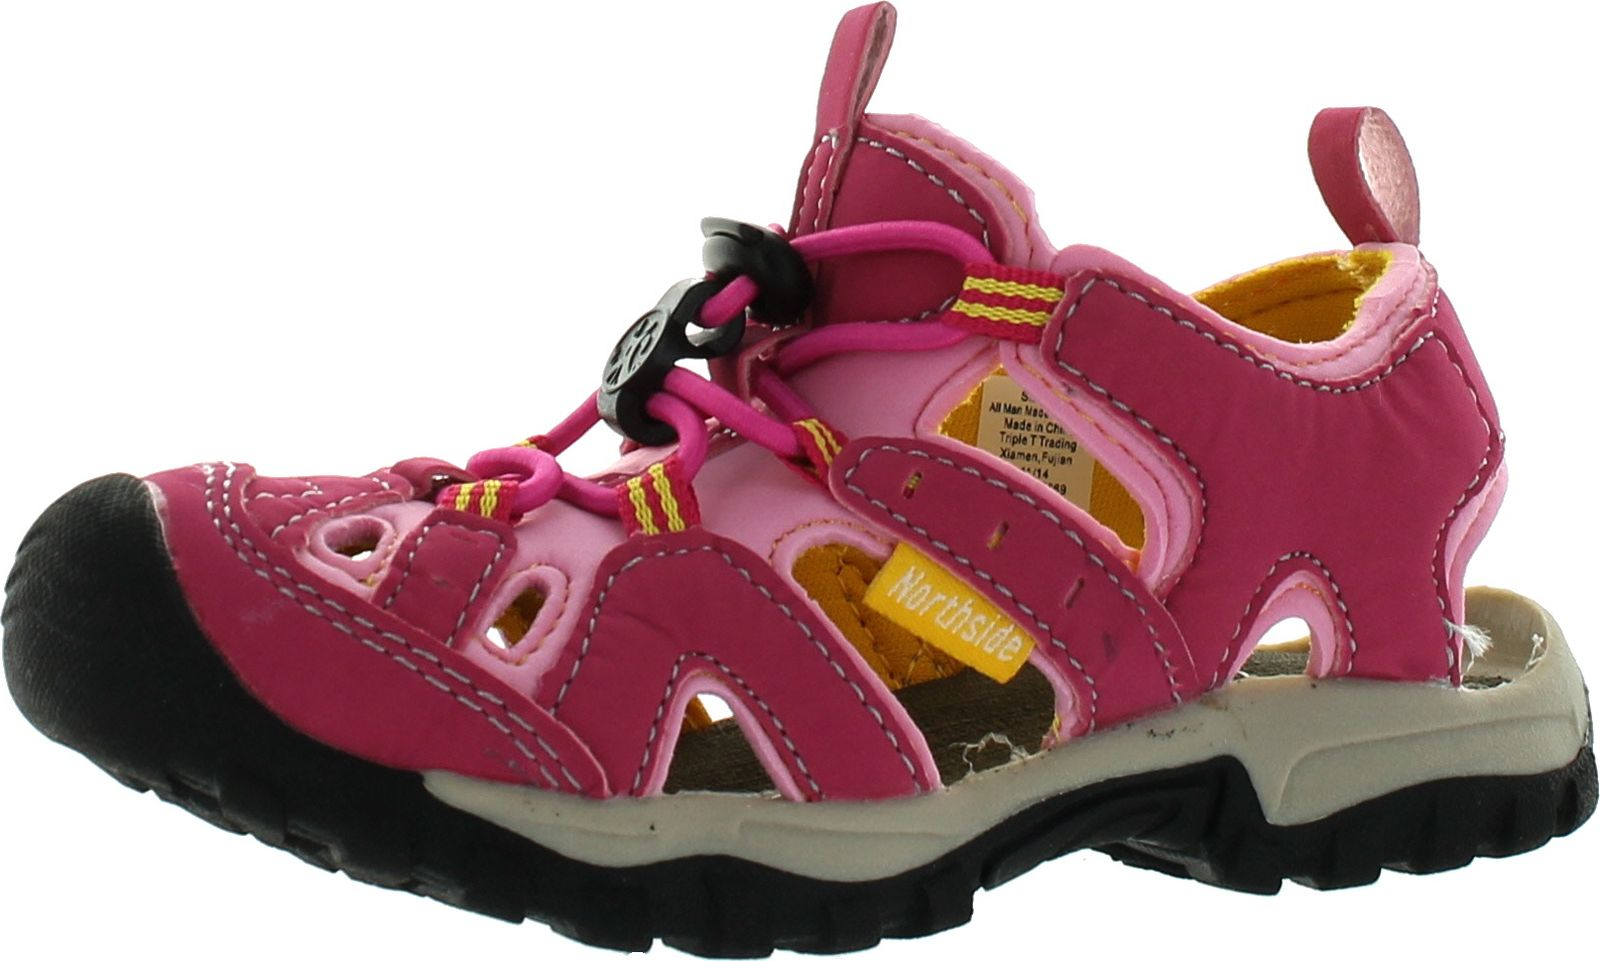 Burke II Athletic Sandal,Fuchsia/Yellow,4 M US Big Kid Northside